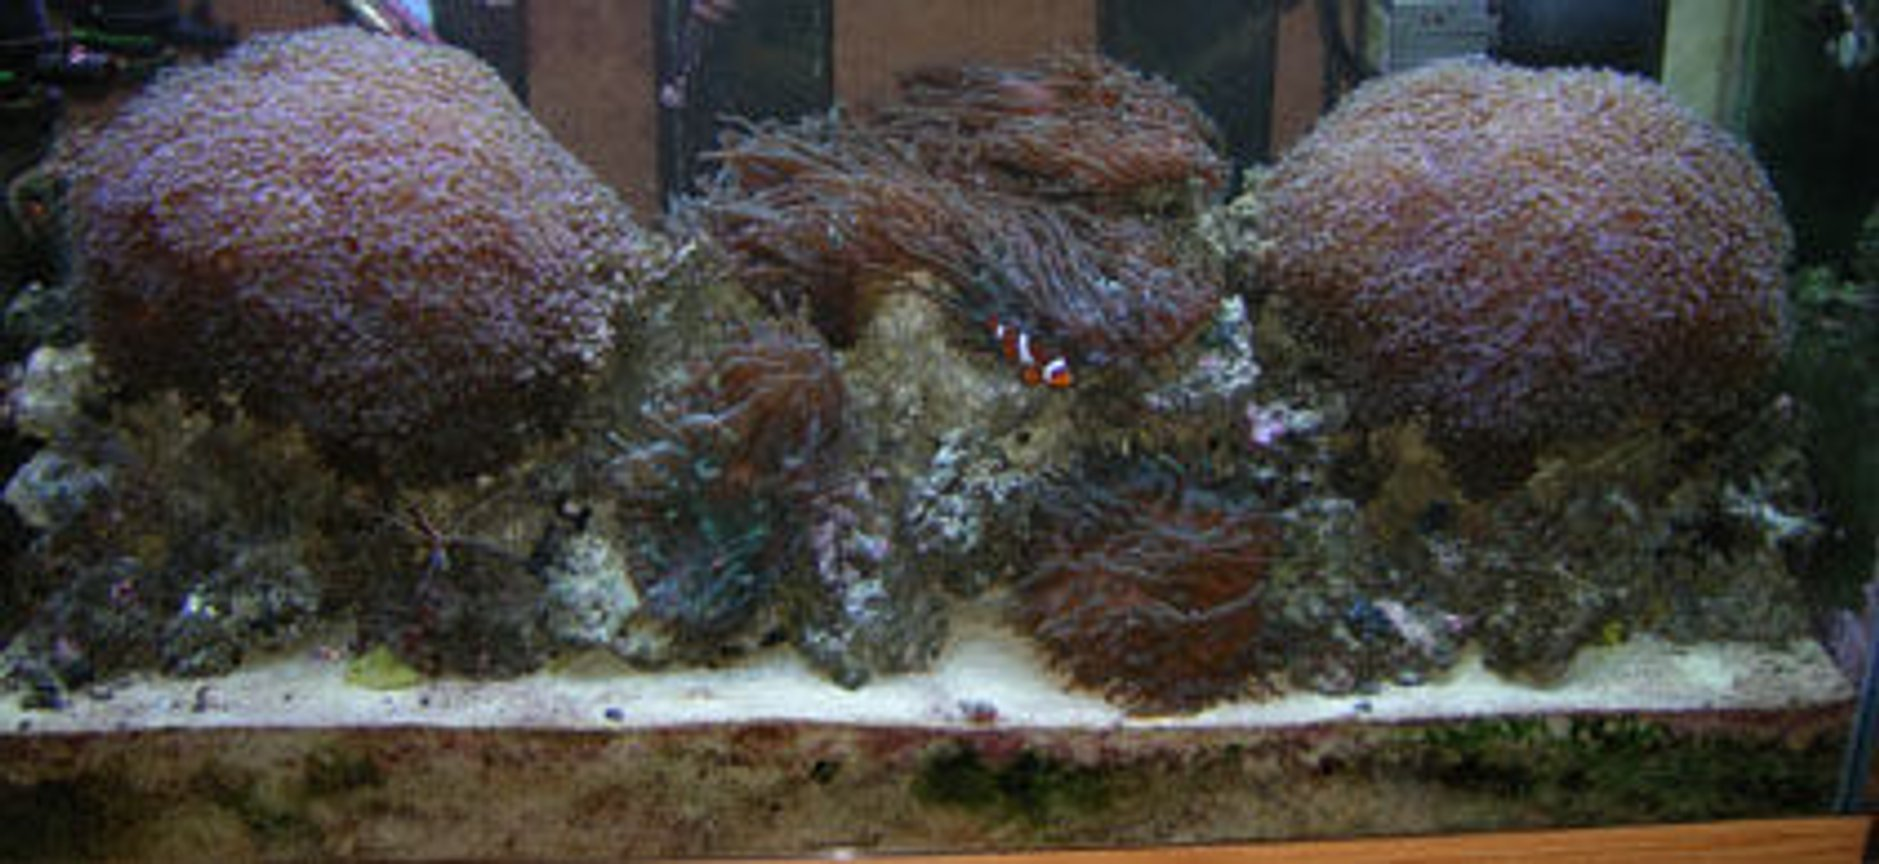 90 gallons reef tank (mostly live coral and fish) - Front Tank Shot